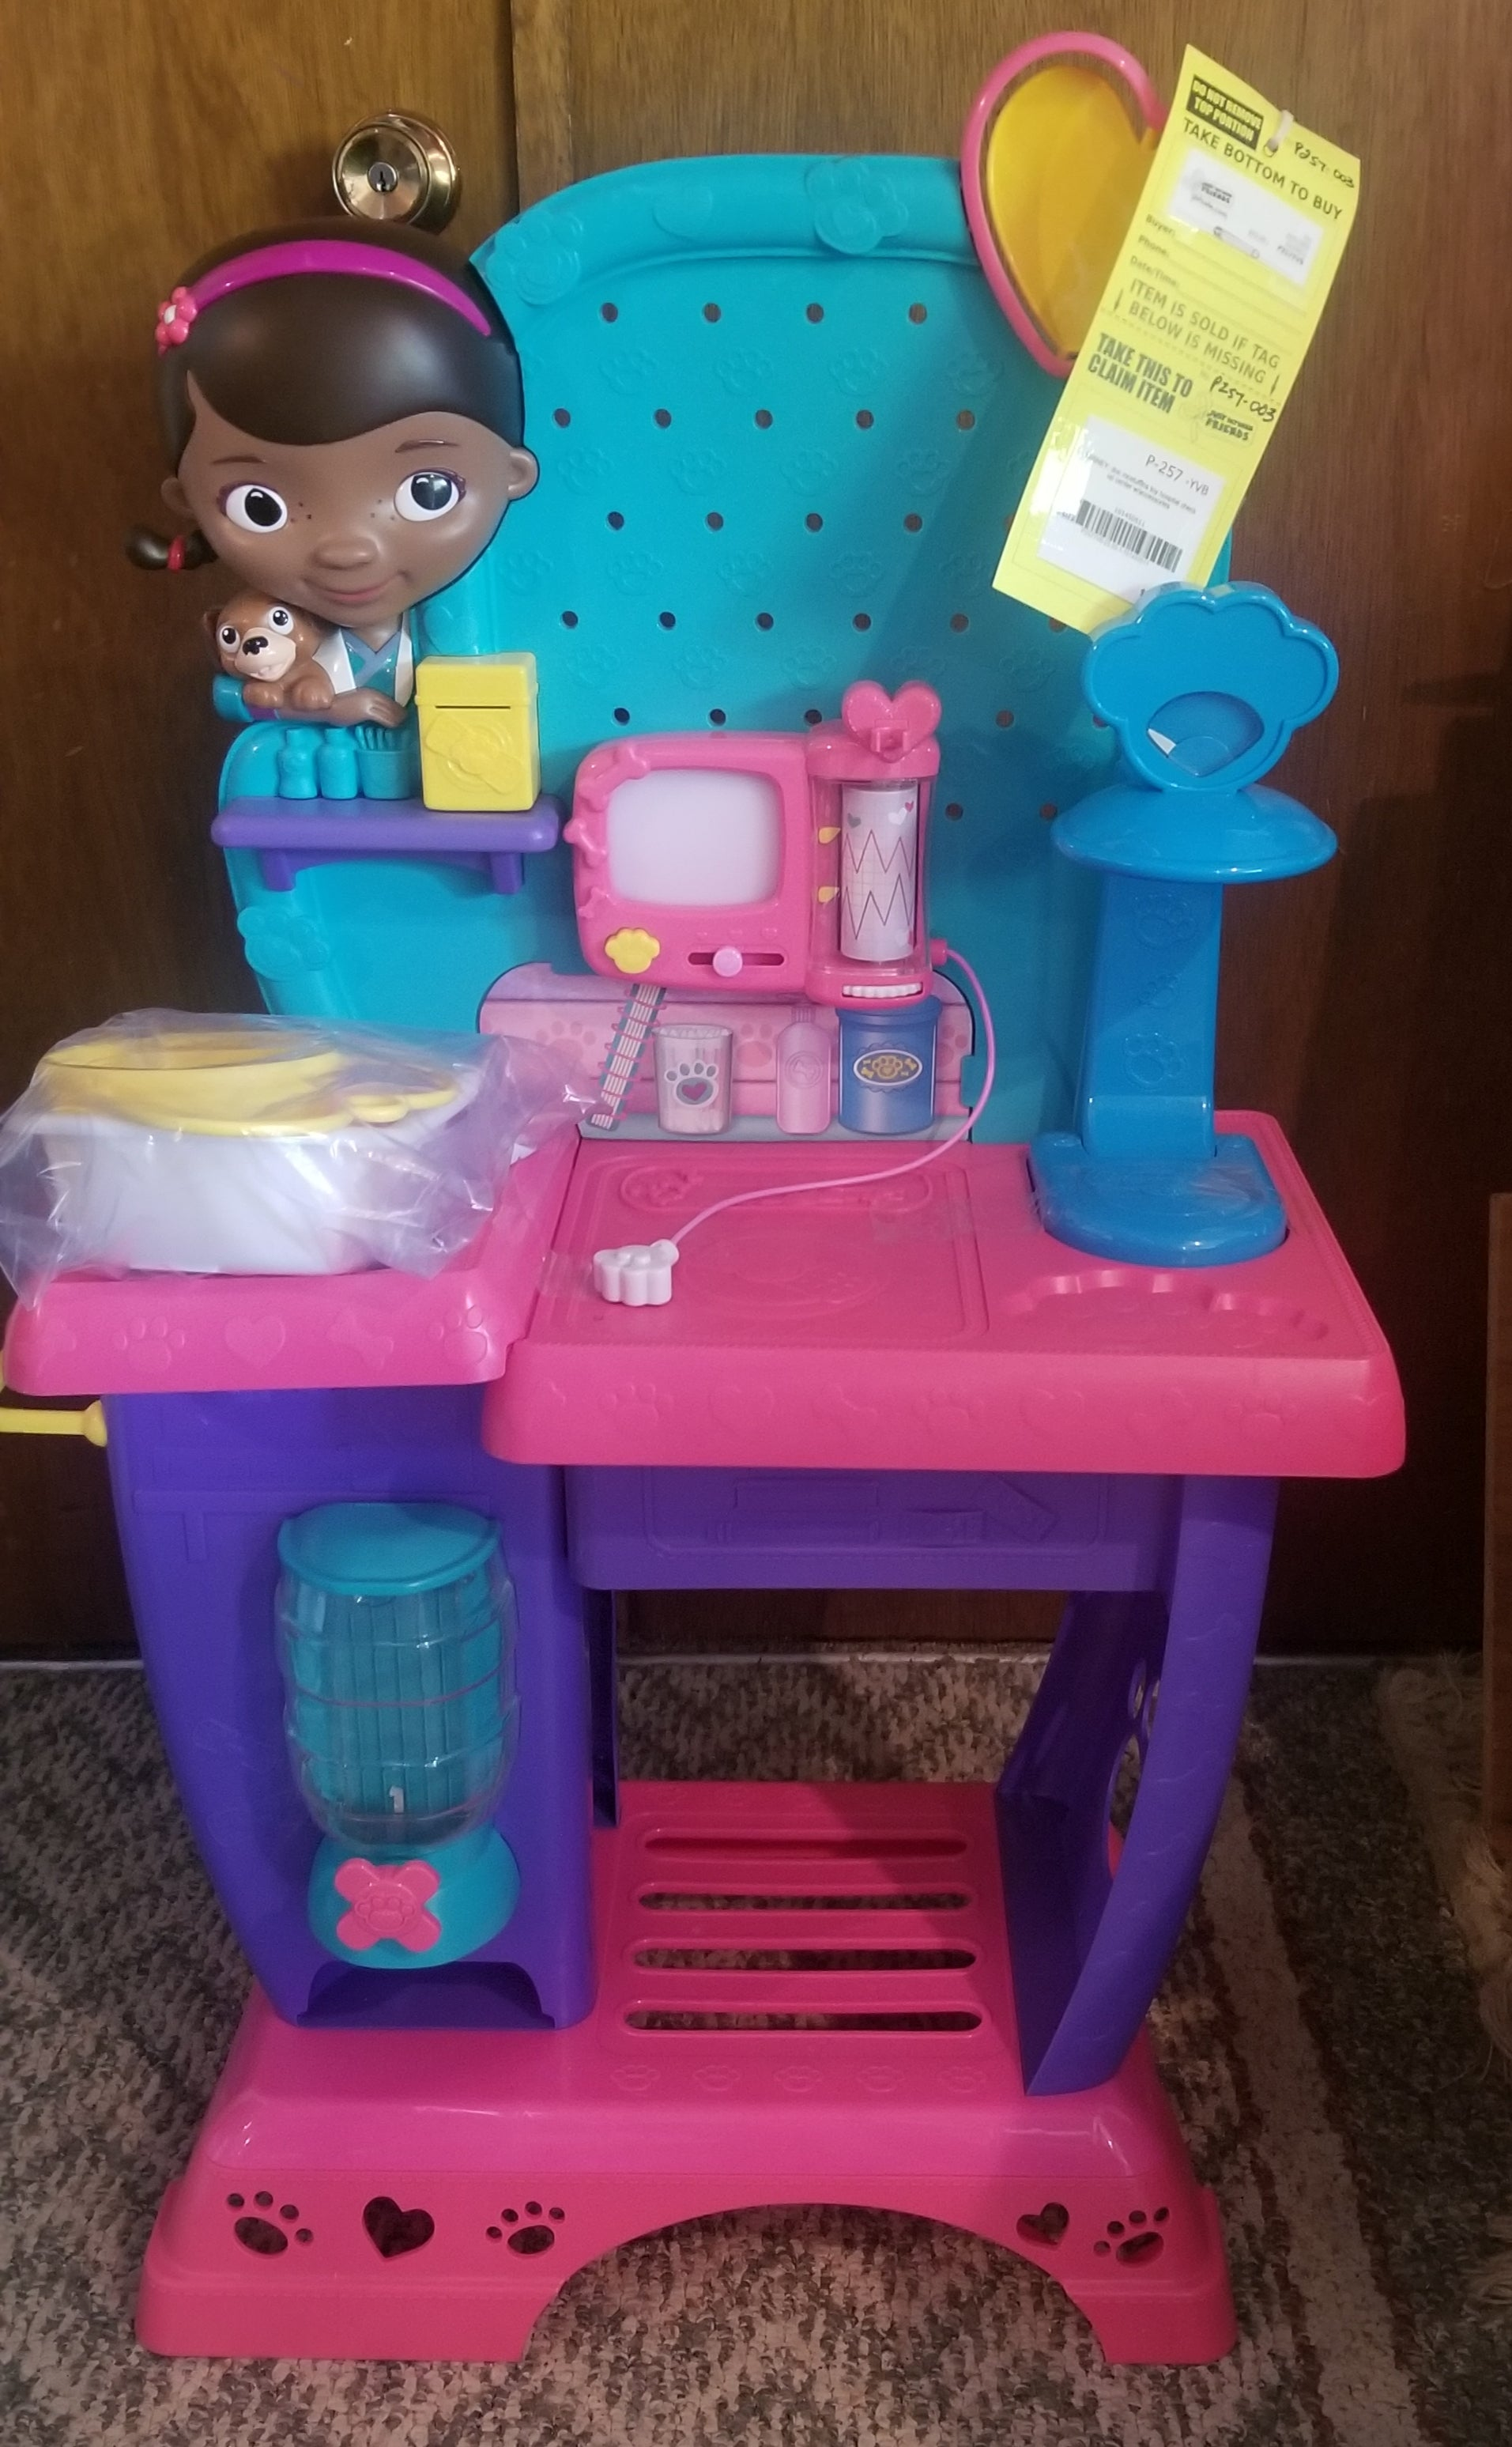 DISNEY doc mcstuffins hospital check up center w/accessories